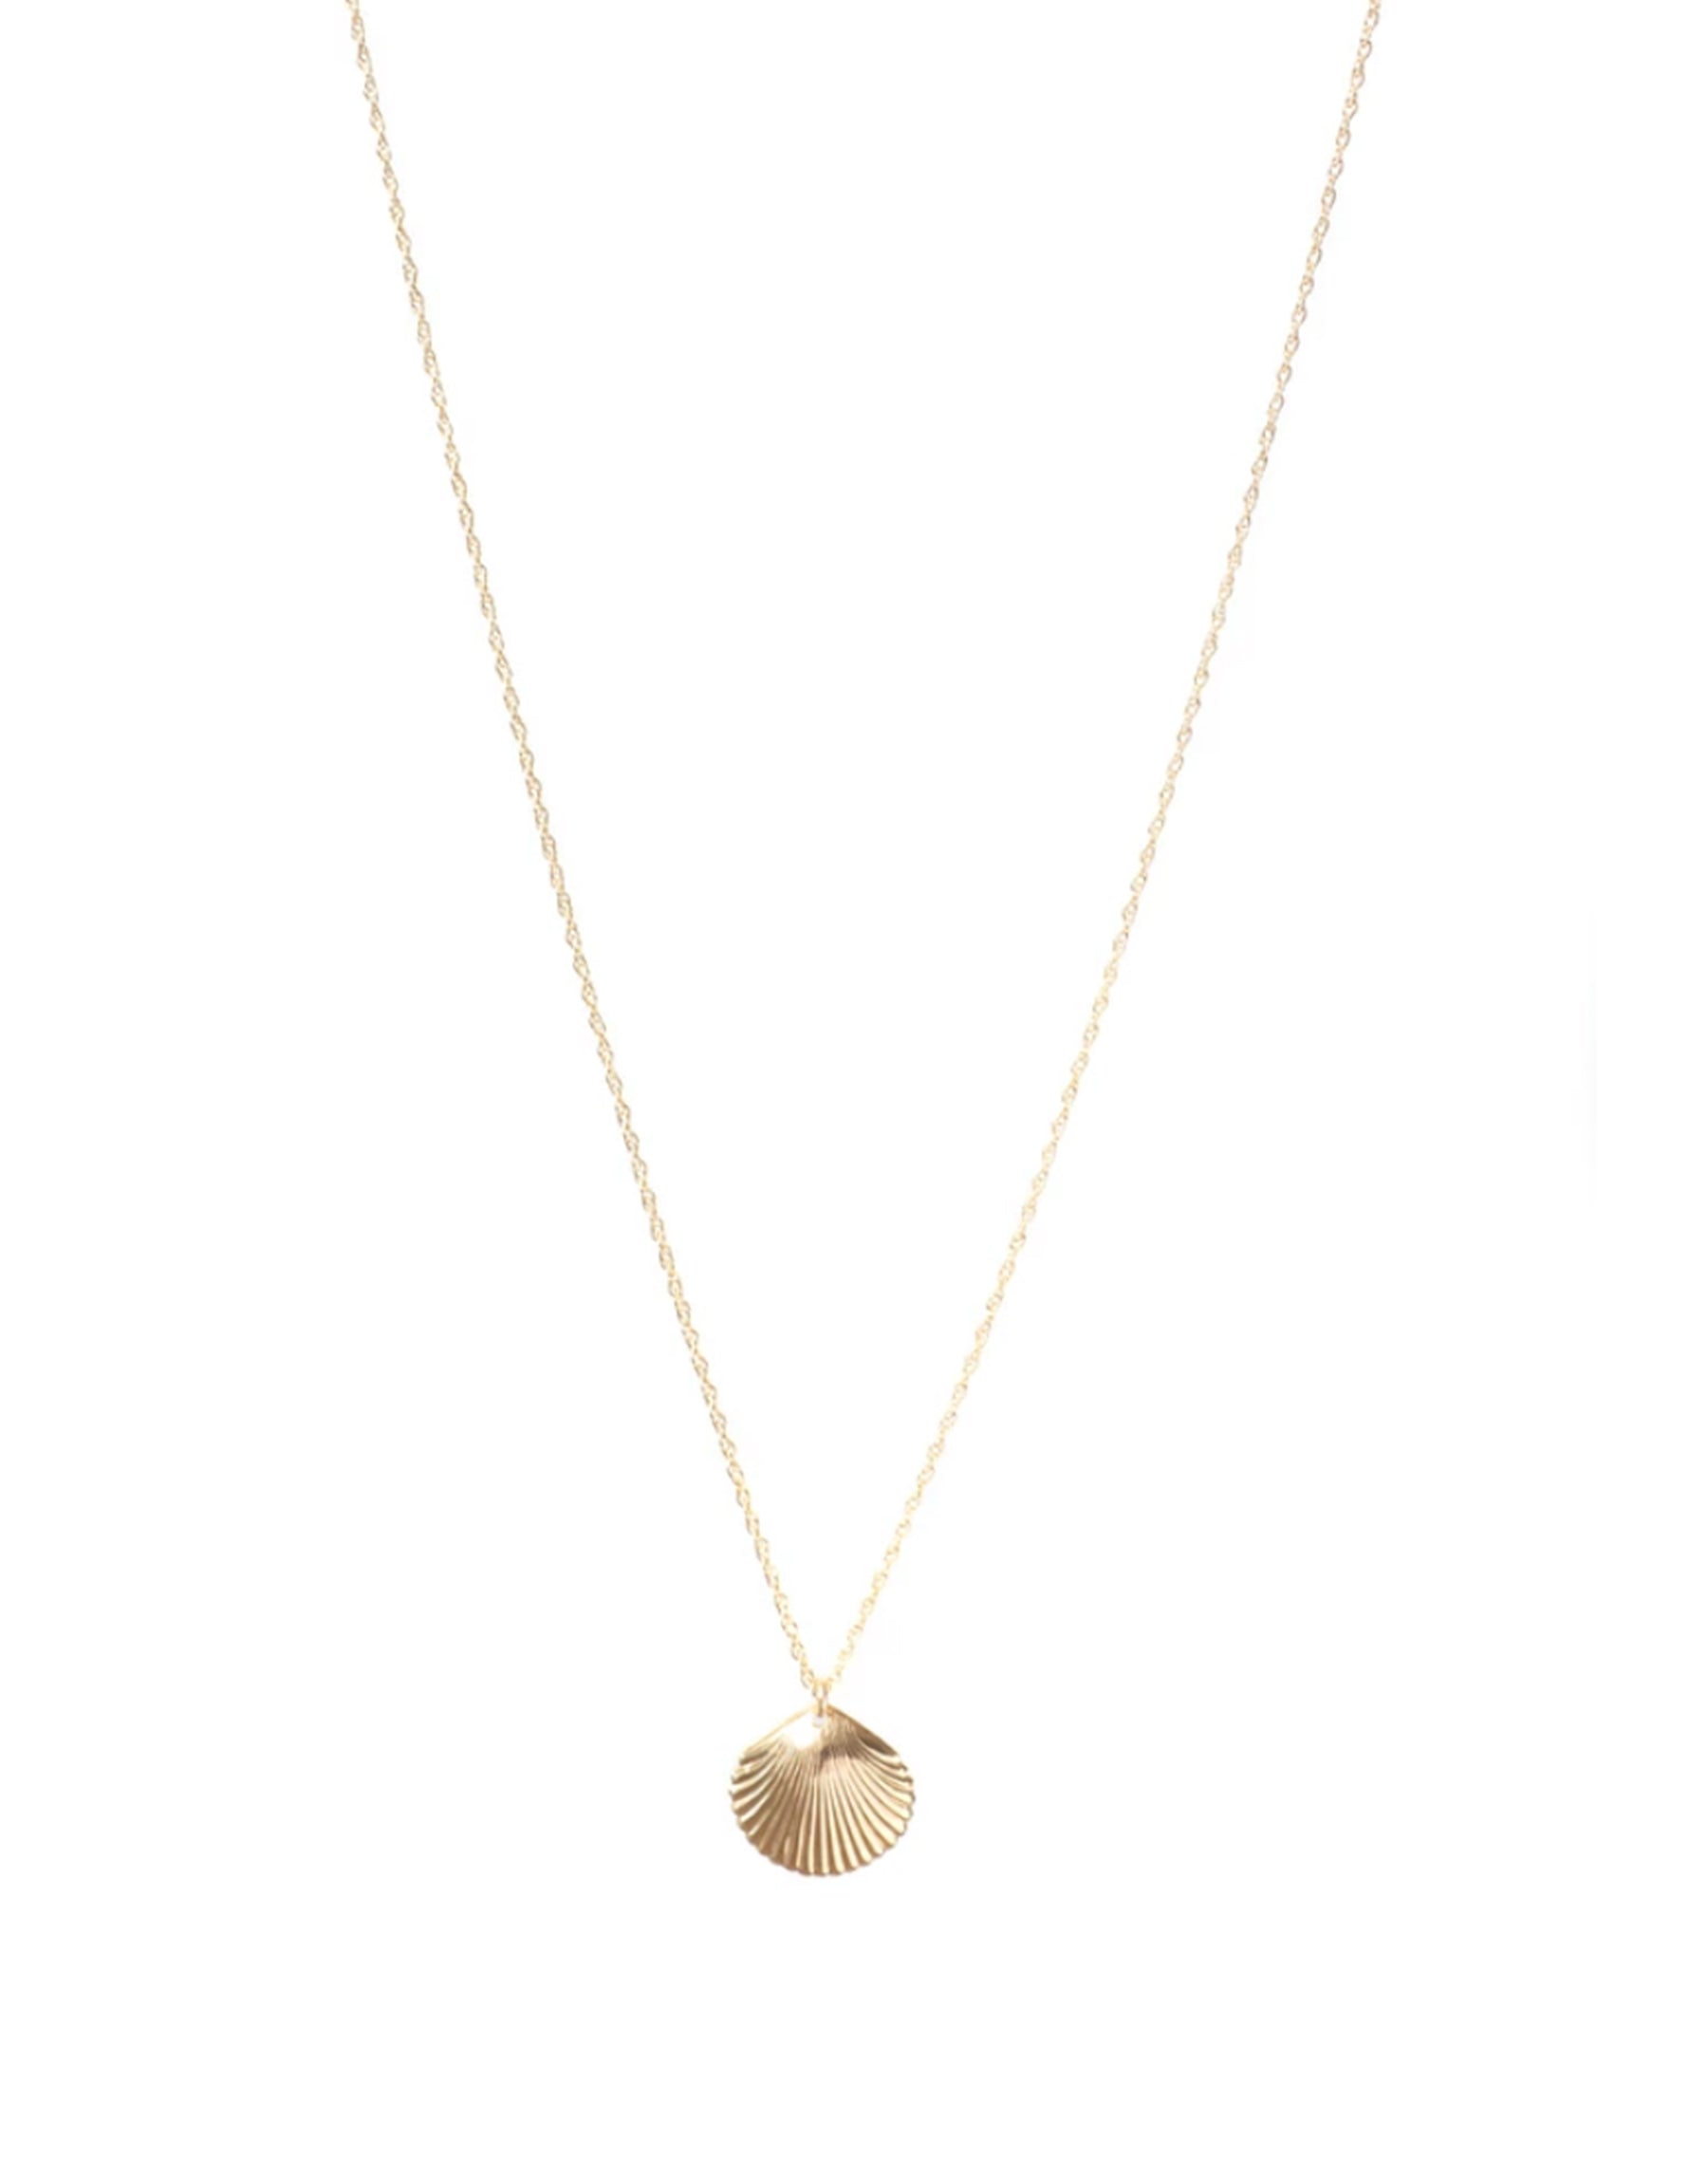 Image of the Coast necklace in gold by Lisbeth.